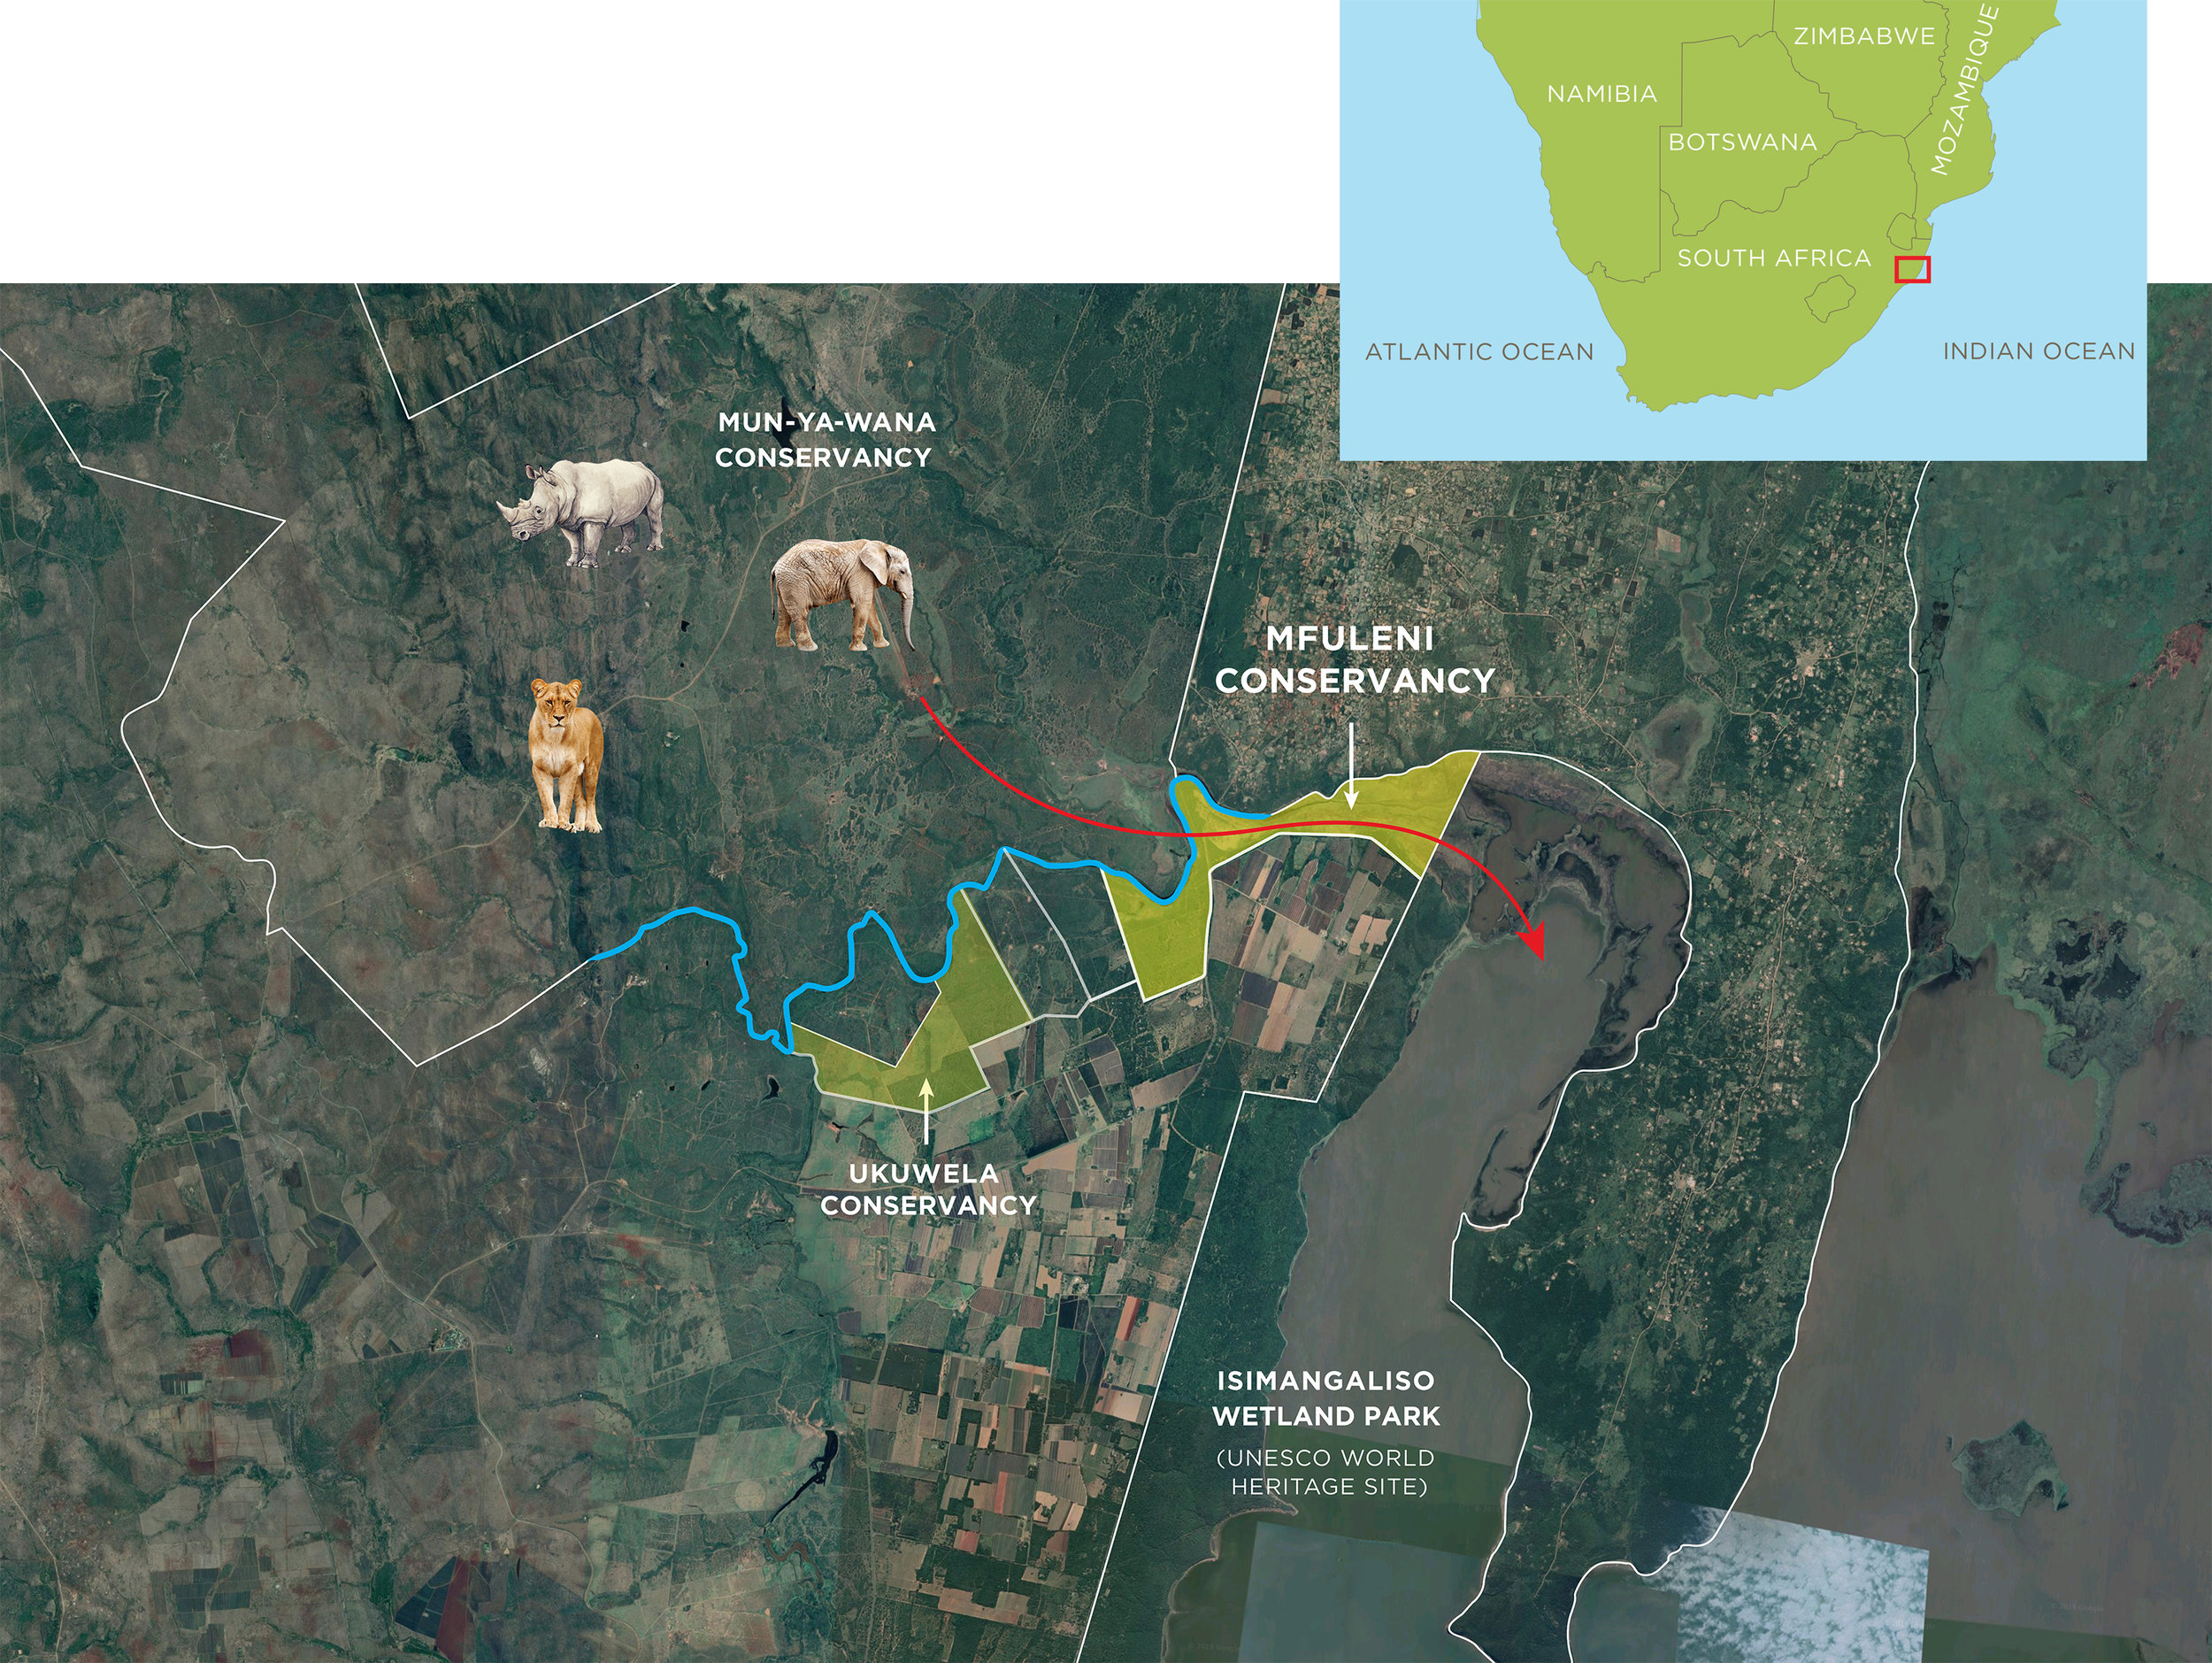 WITH THE PROTECTION OF MFULENI THERE IS NOW THE POTENTIAL TO CREATE A WILDLIFE CORRIDOR BETWEEN THE MUN-YA-WANA CONSERVANCY AND ISIMANGALISO WETLAND PARK